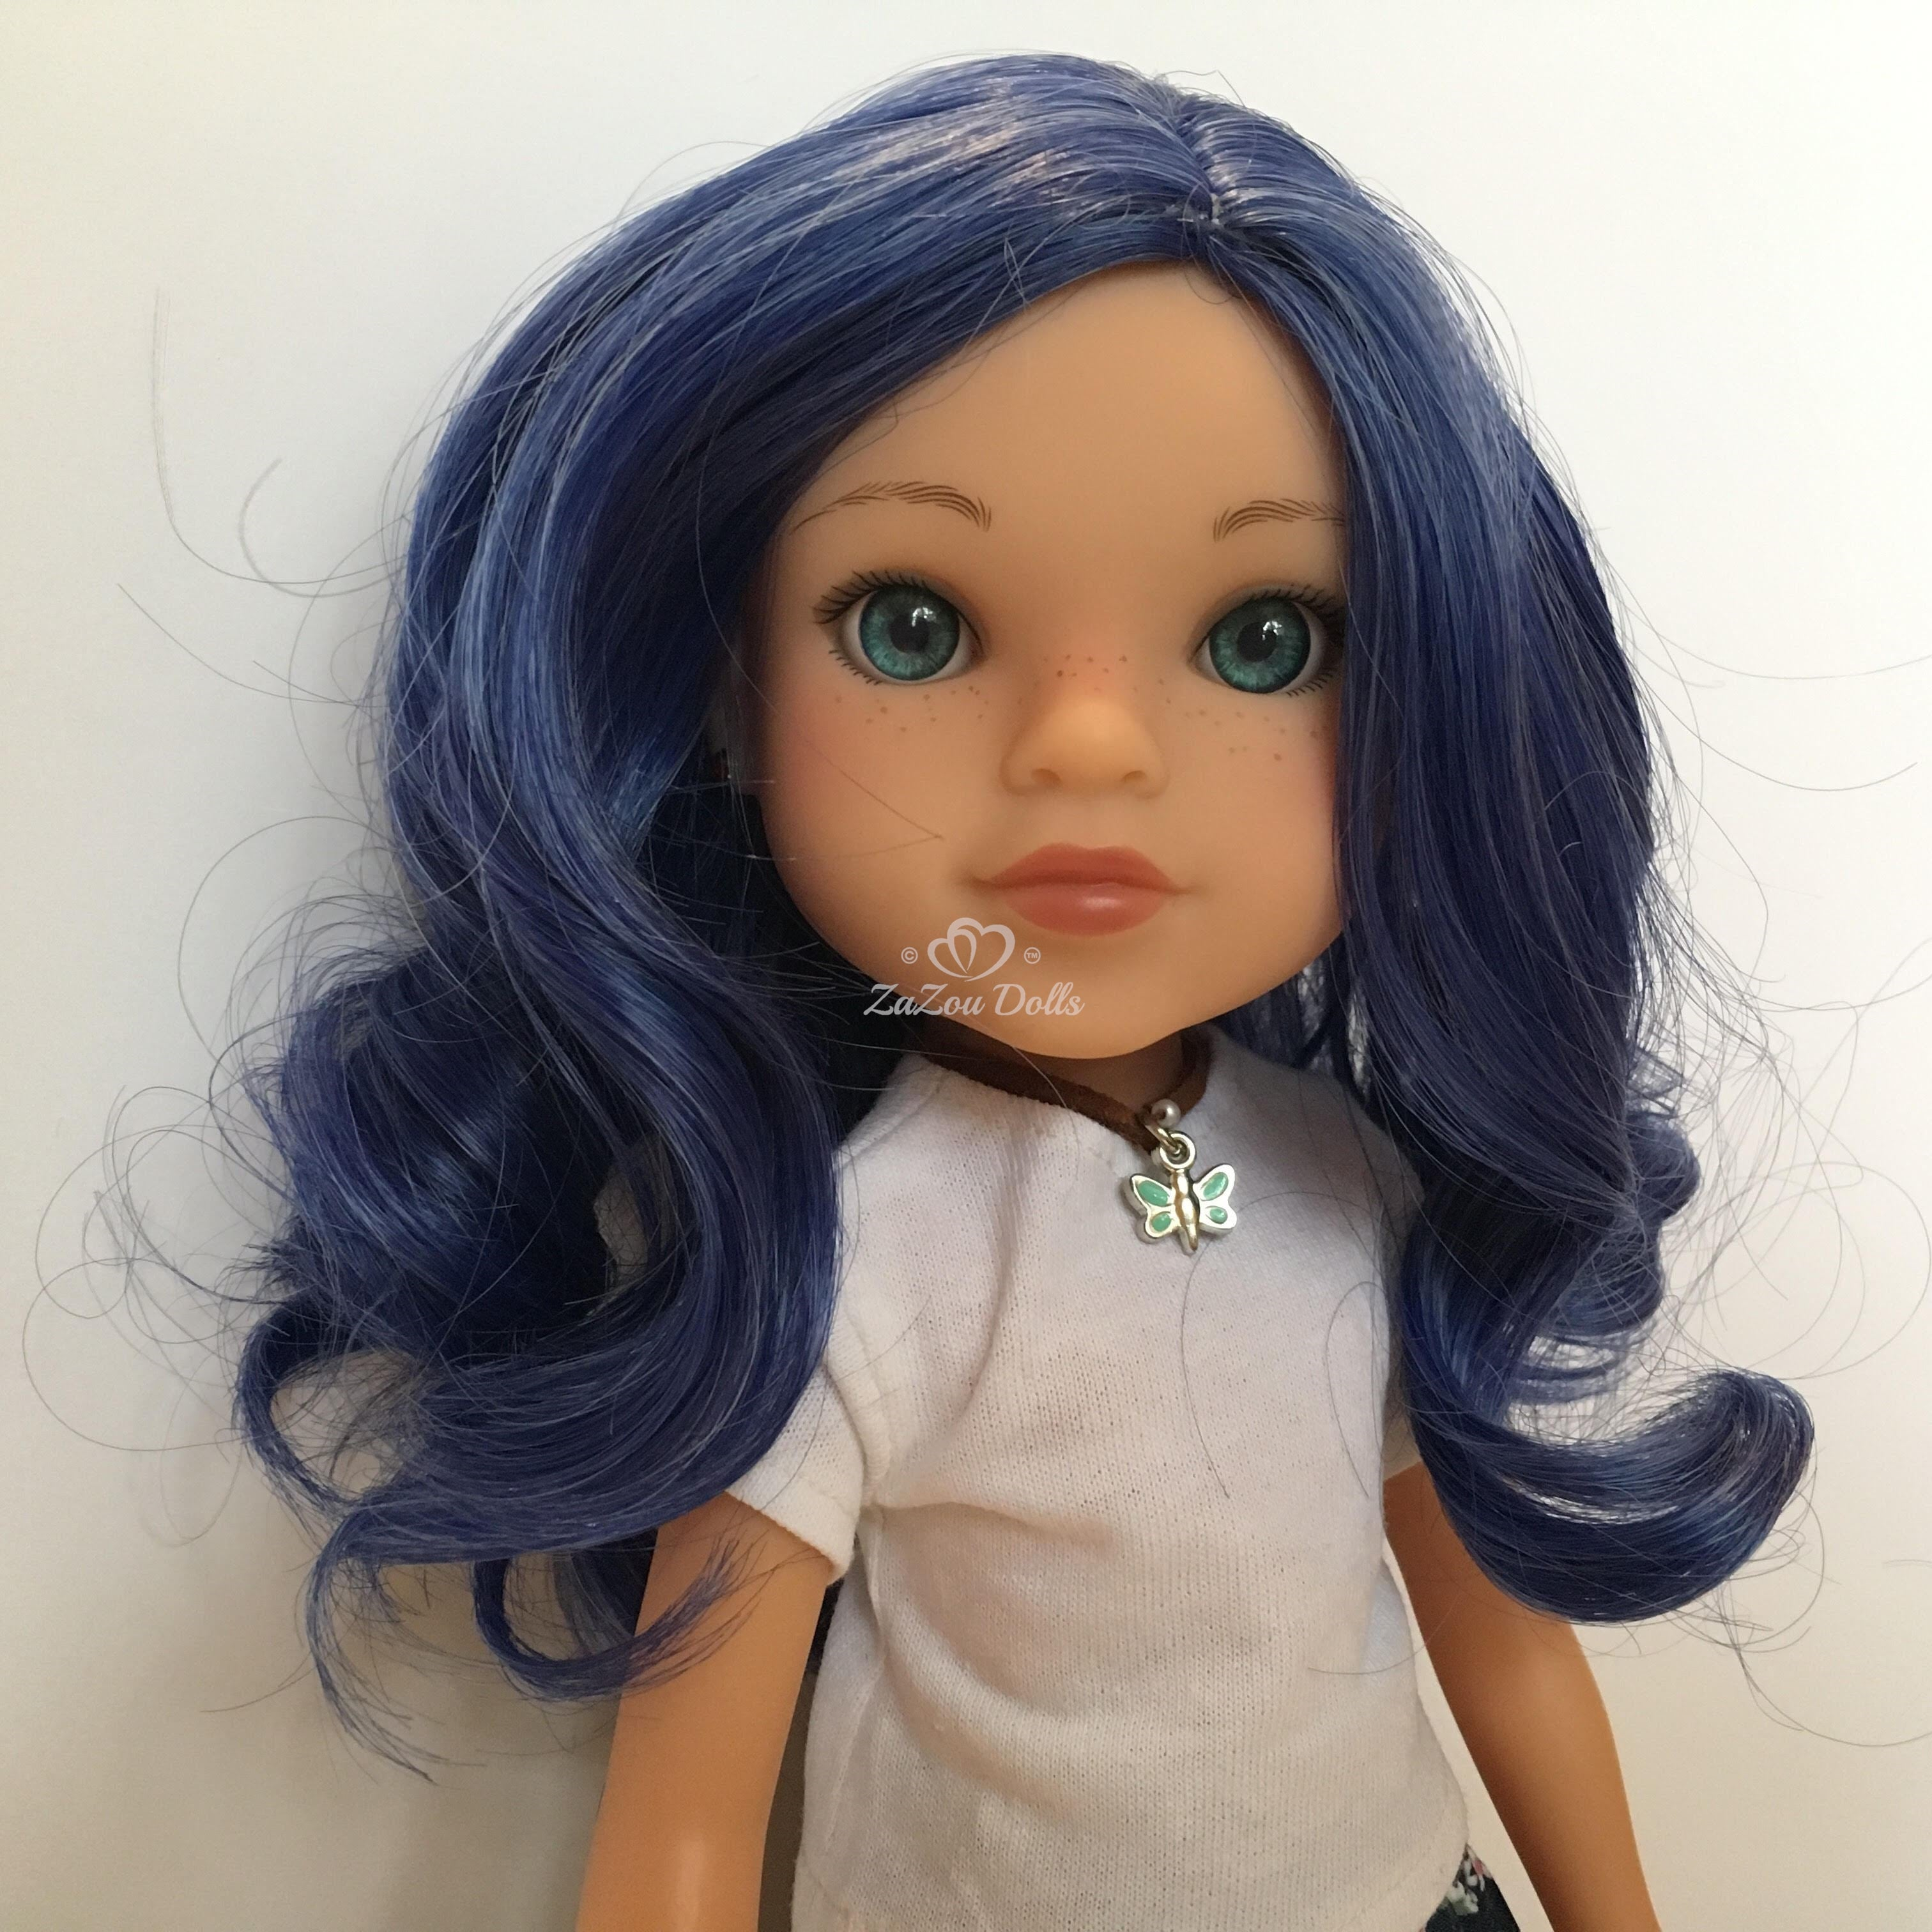 "ZaZou Luxury Petite Wig in Evening Blue for 14"" dolls such as Wellie Wishers and Heart4Hearts"